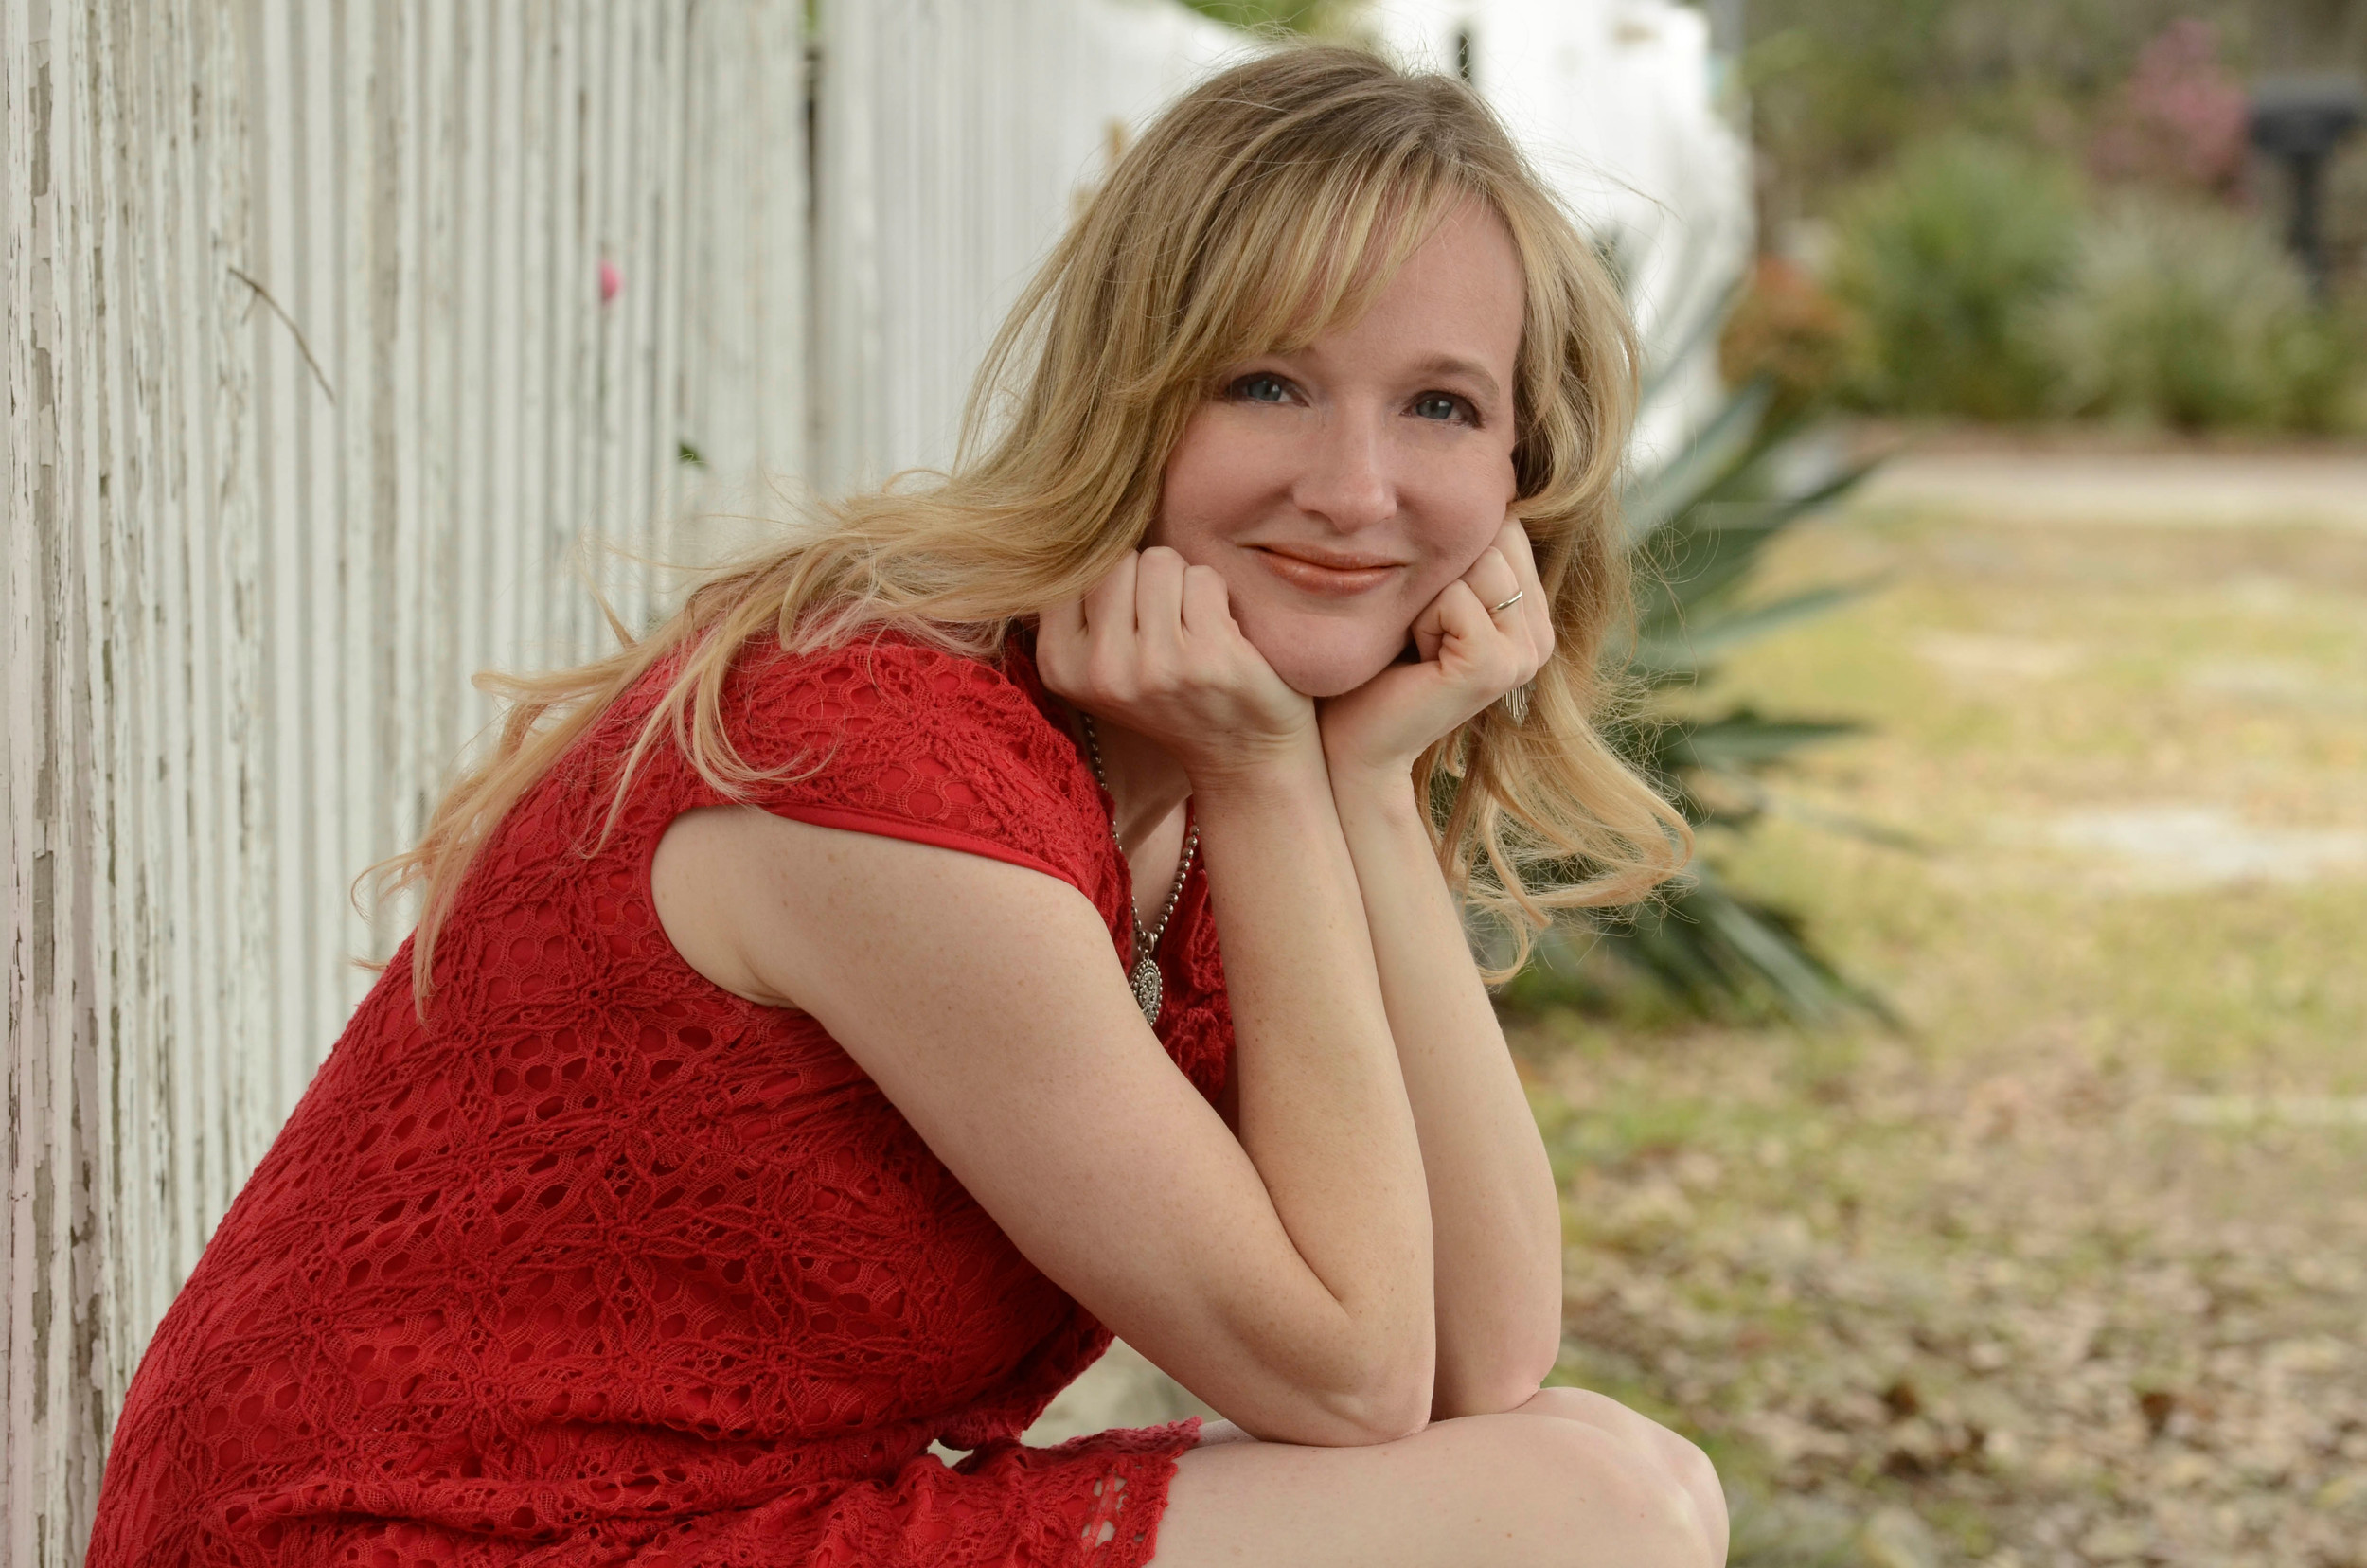 Singer-songwriter Lauren Lapointe of Savannah performs a CD release concert for �Superhero� with support from Lauren Fincham May 25 at Three Layers Café in Springfield.